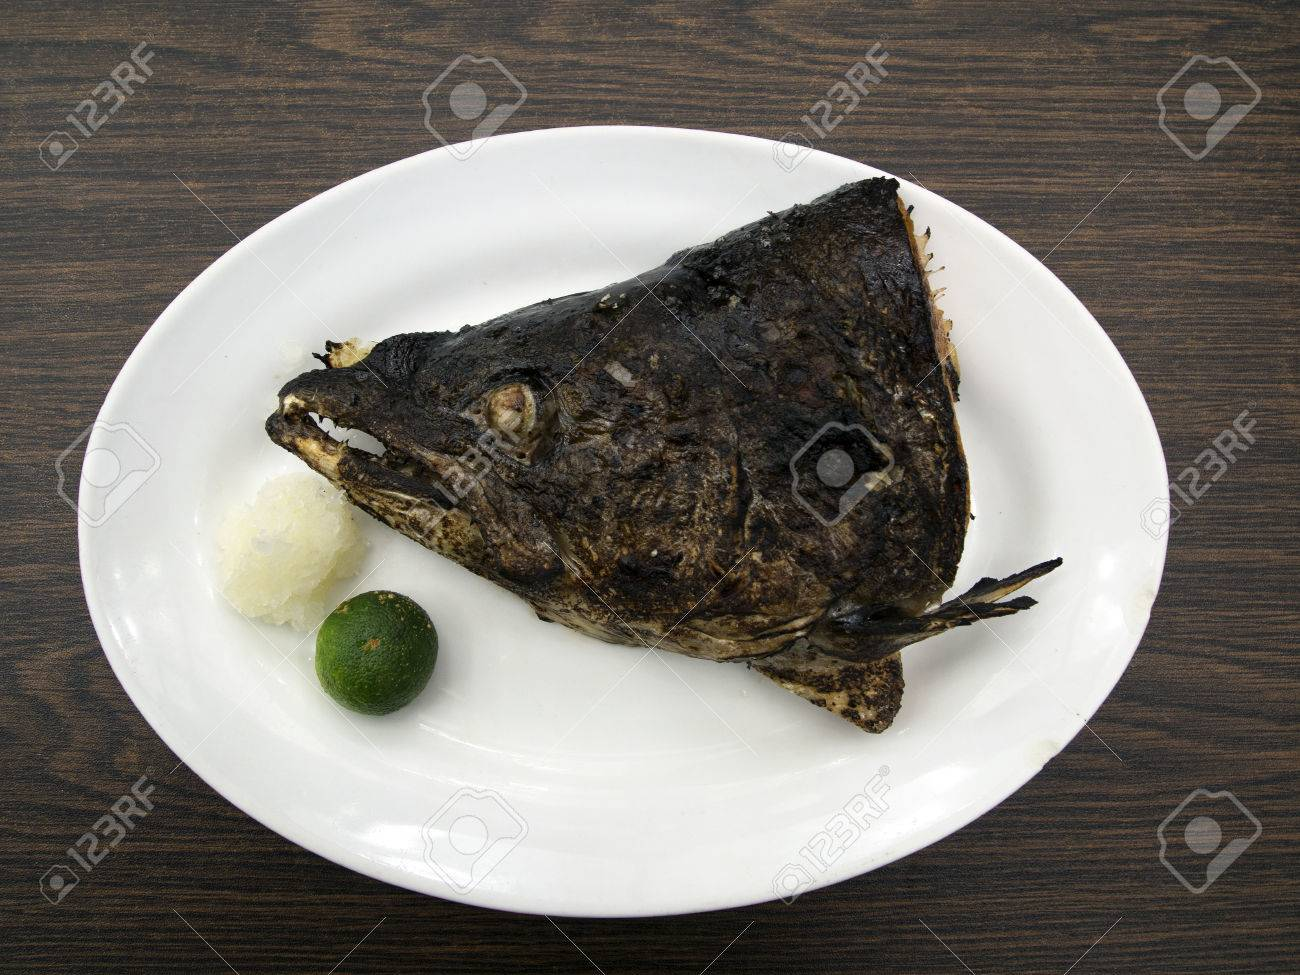 Stock Photo Grilled Salmon Head Japanese Style Grilled Salmon Head Japanese  Style Stock Photo, Picture